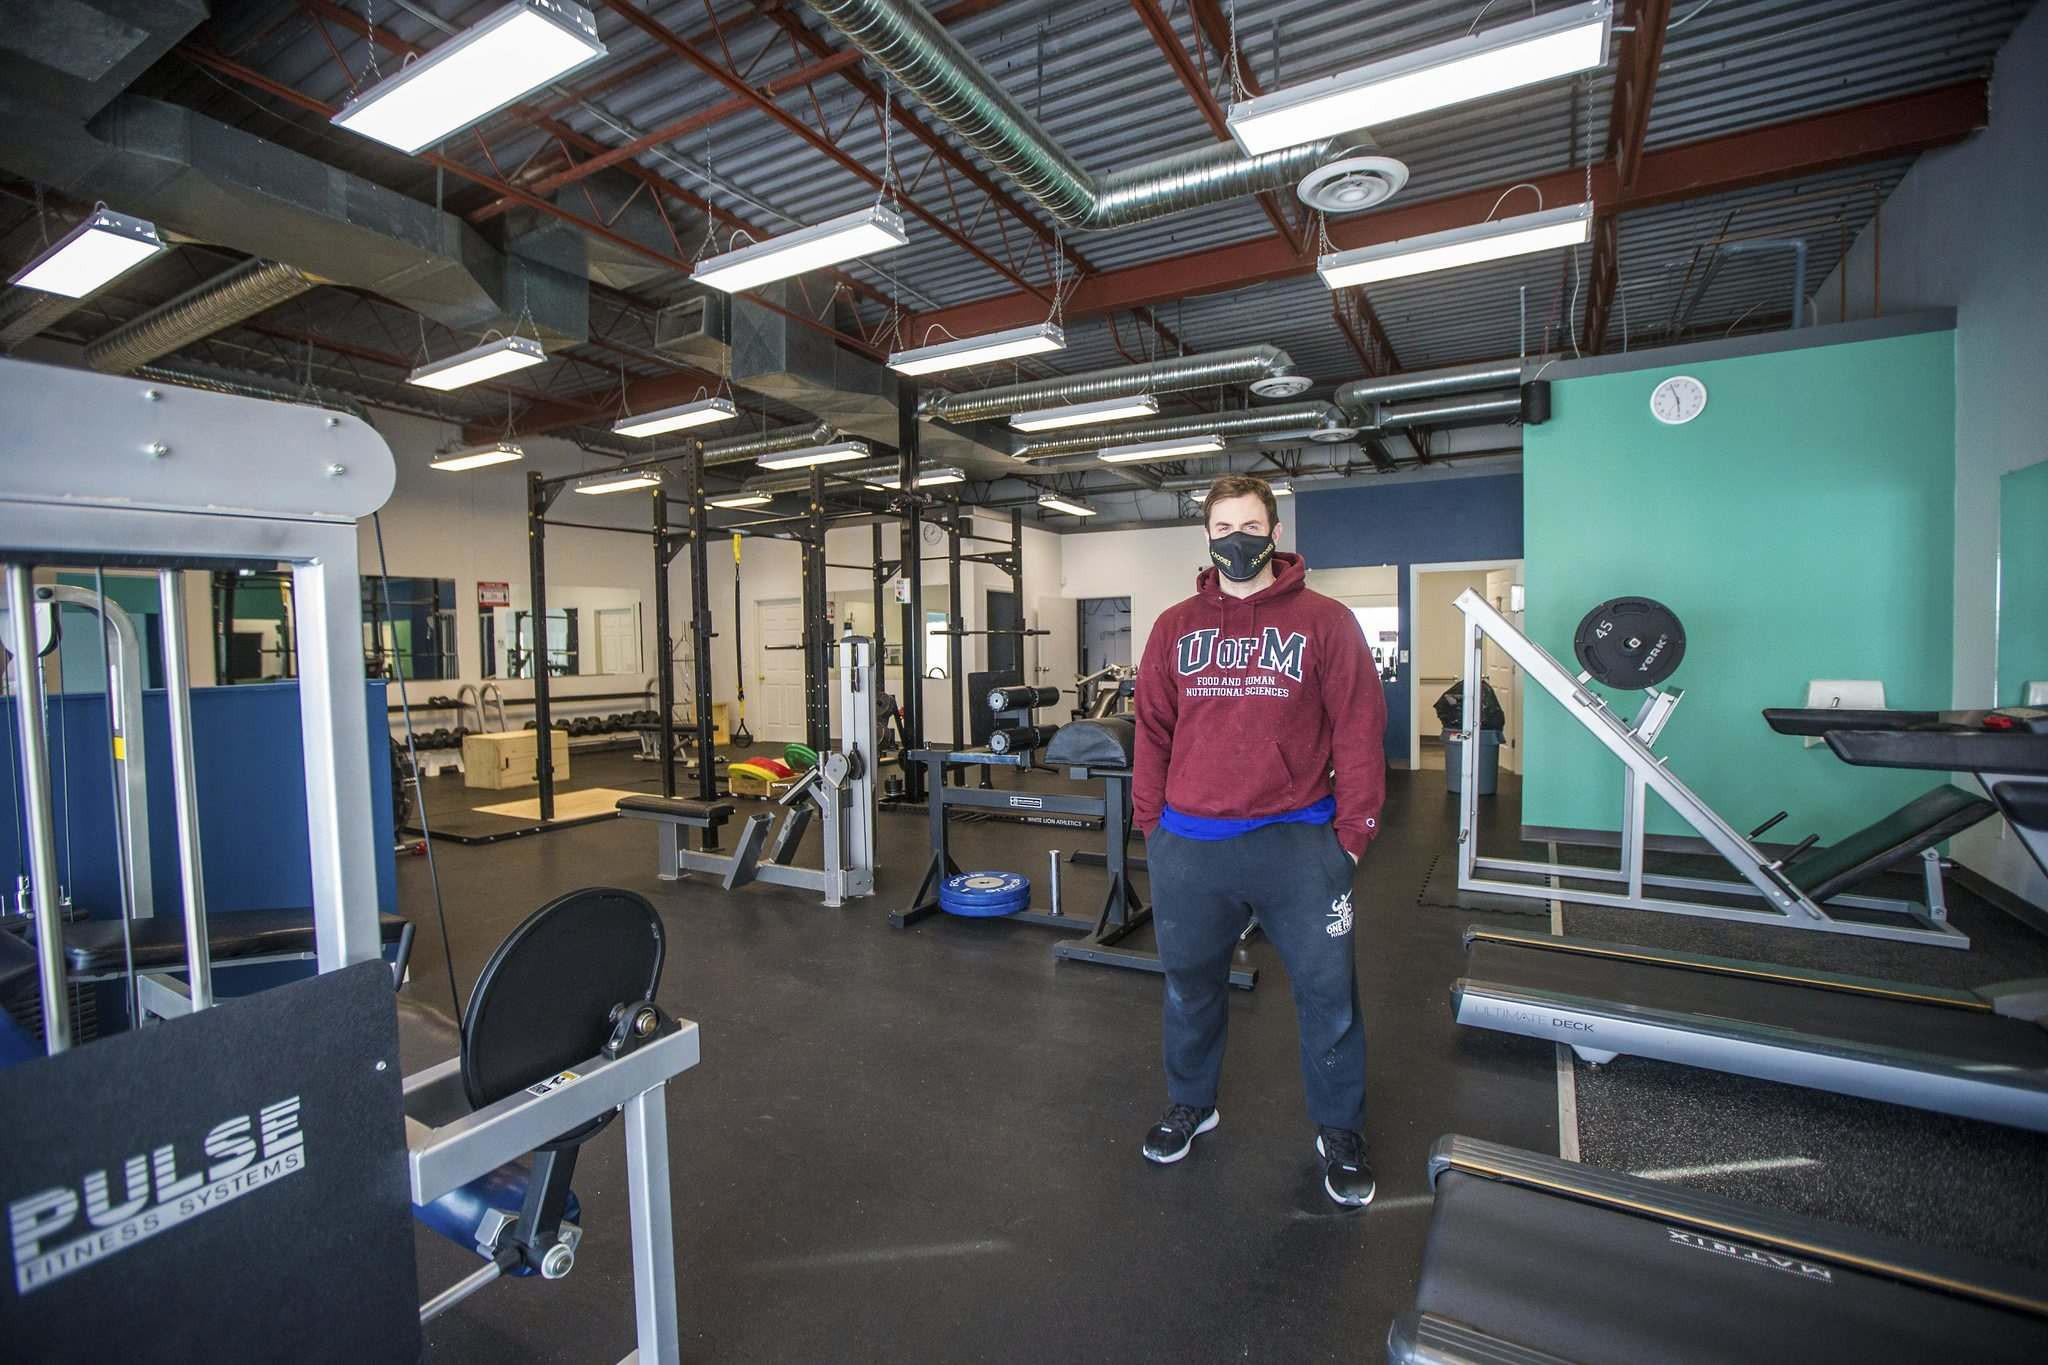 Dino Camiré is operator of One Family Fitness Centre.